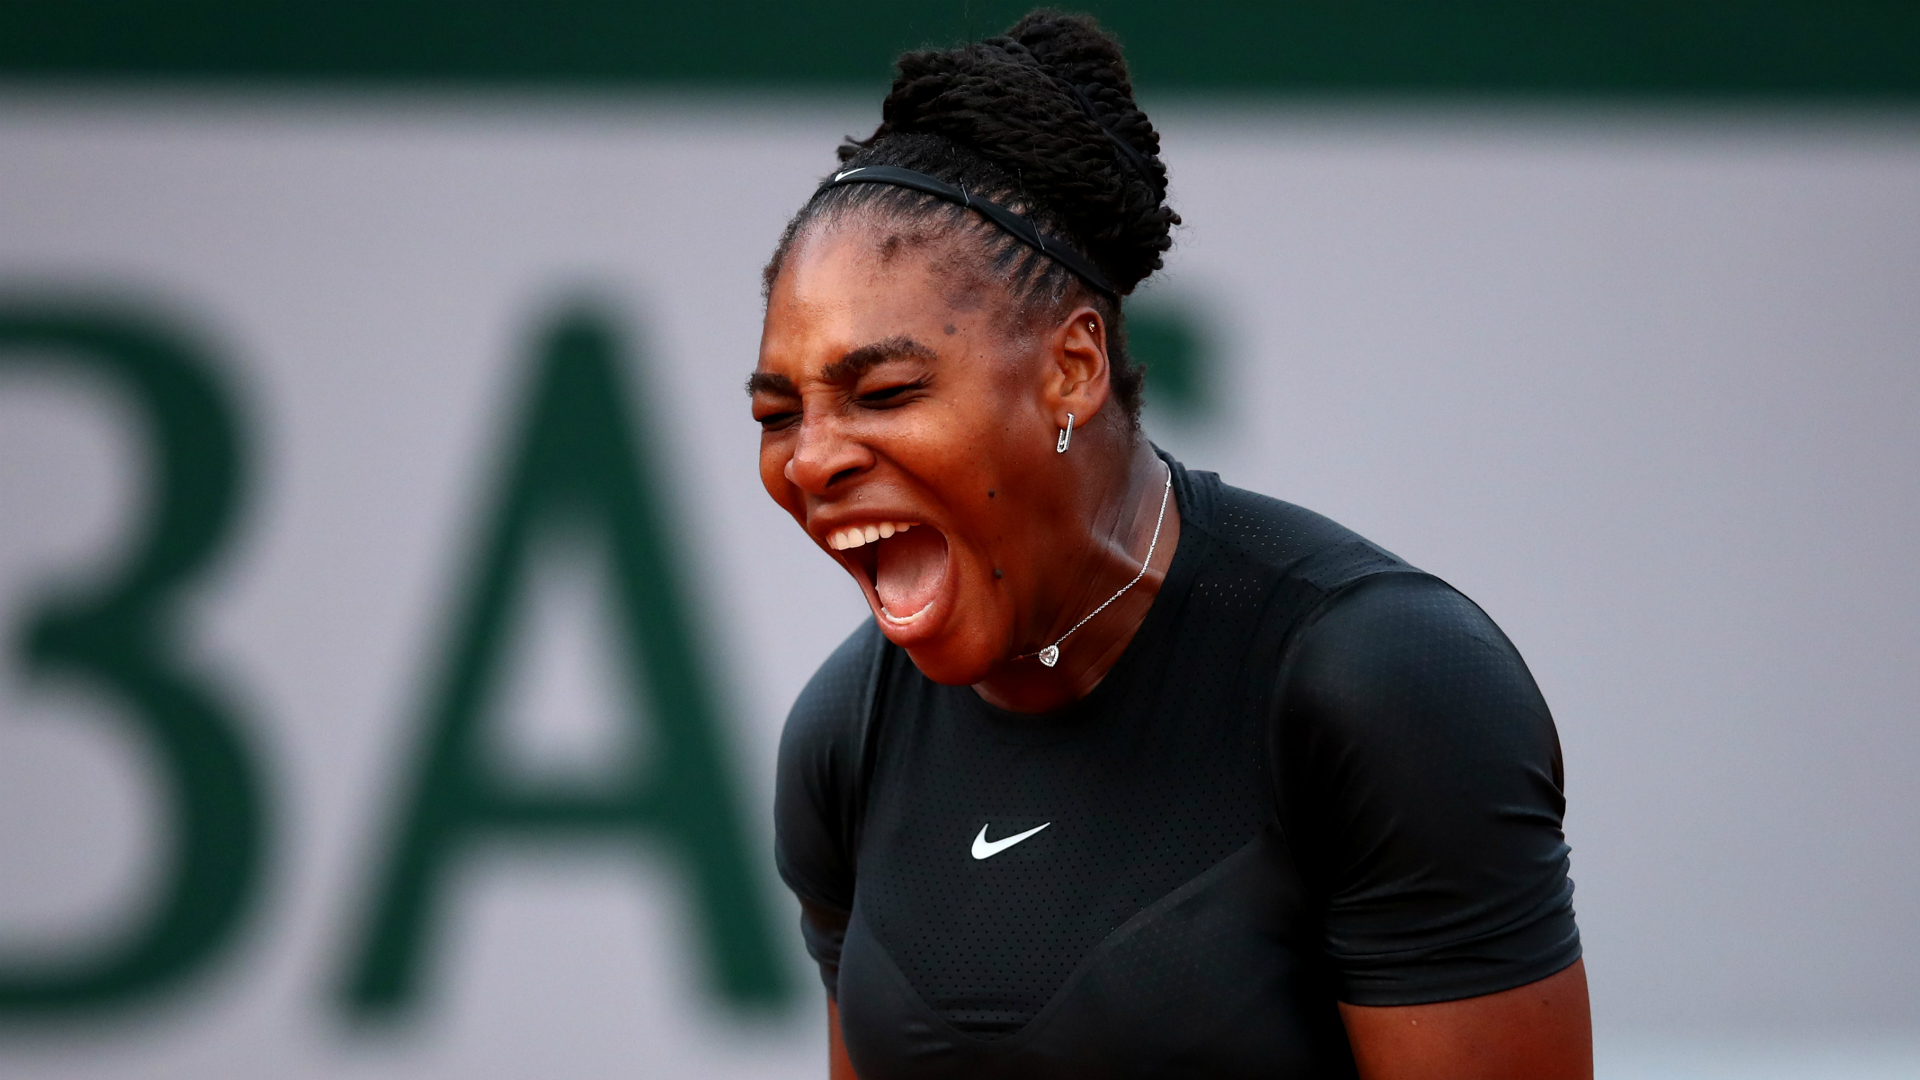 Serena Williams Forced To Withdraw From French Open Due To Pectoral Injury